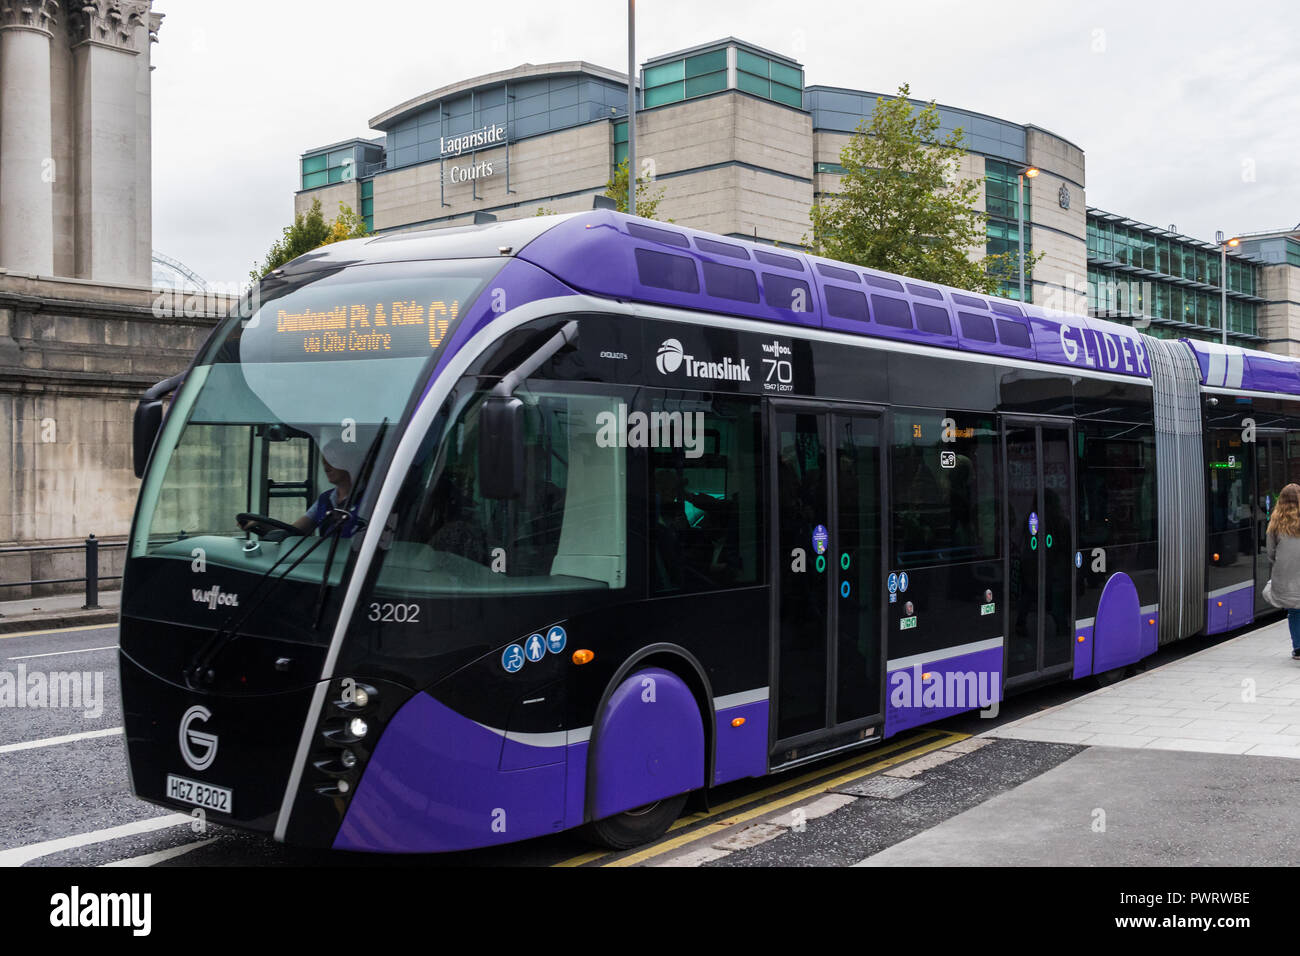 Glider bus pulling away from bus stop with Laganside Courts in background. New articulated buses linking East and West Belfast introduced by Translink - Stock Image